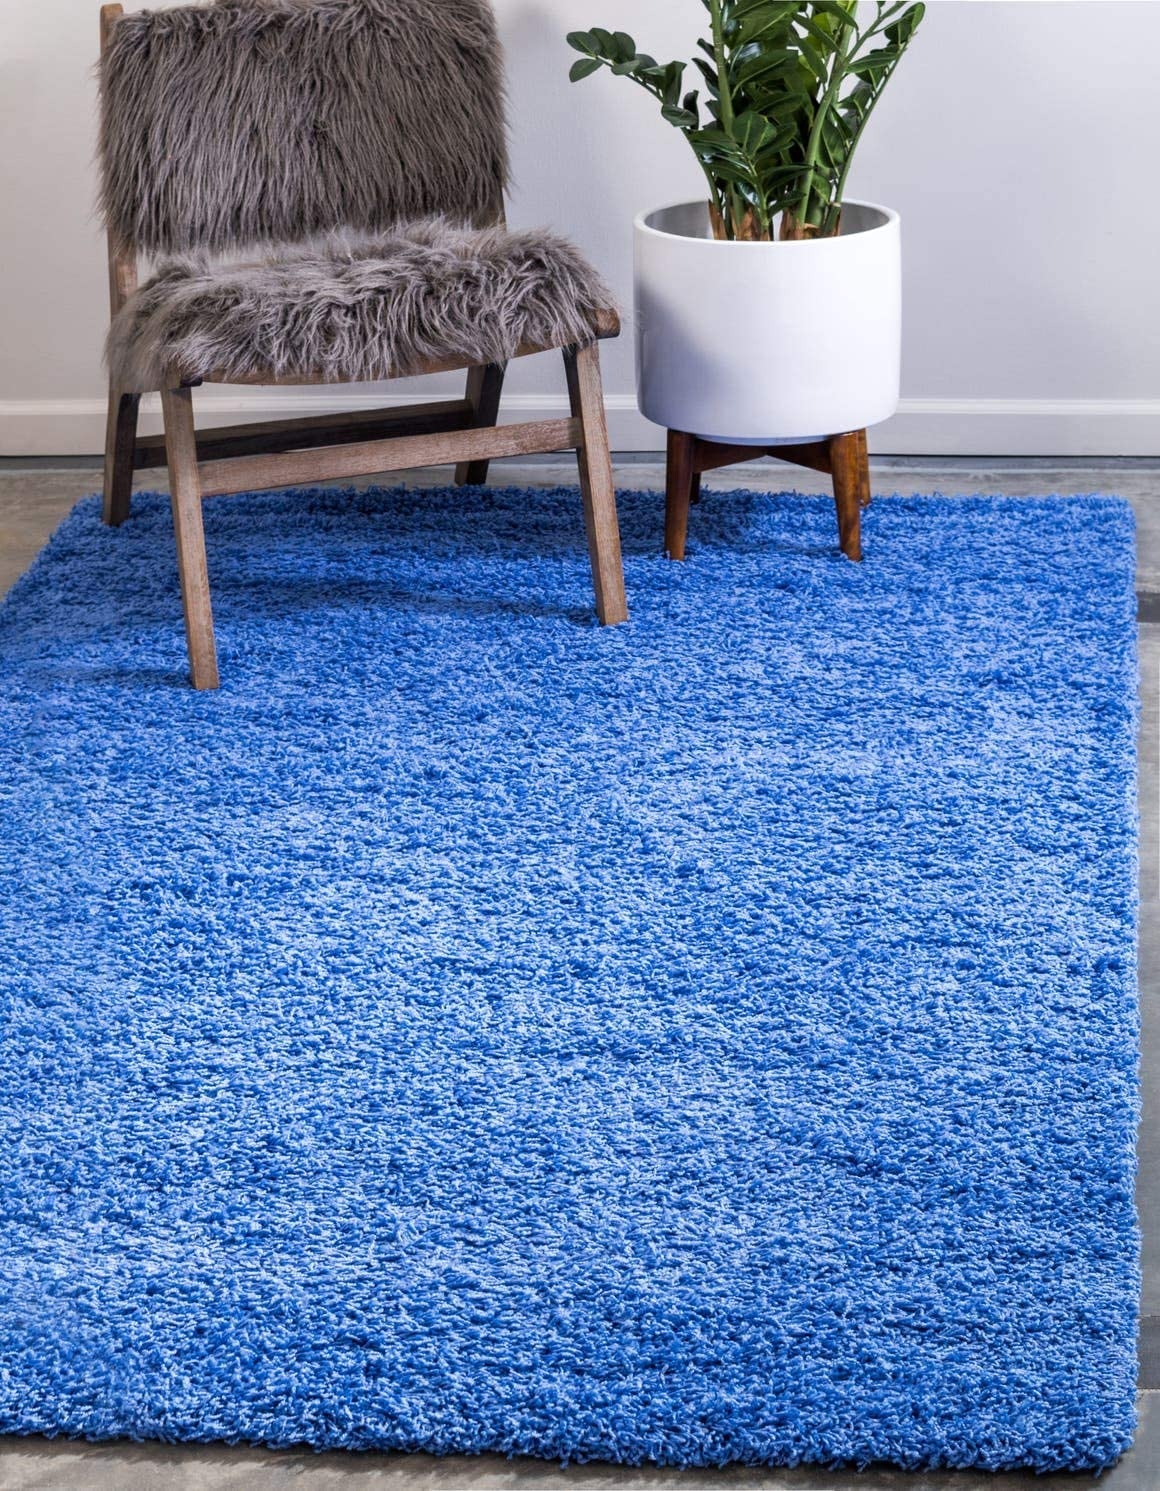 Unique Loom Solo Solid Shag Collection Modern Plush Periwinkle Blue Area Rug (7' 0 x 10' 0)